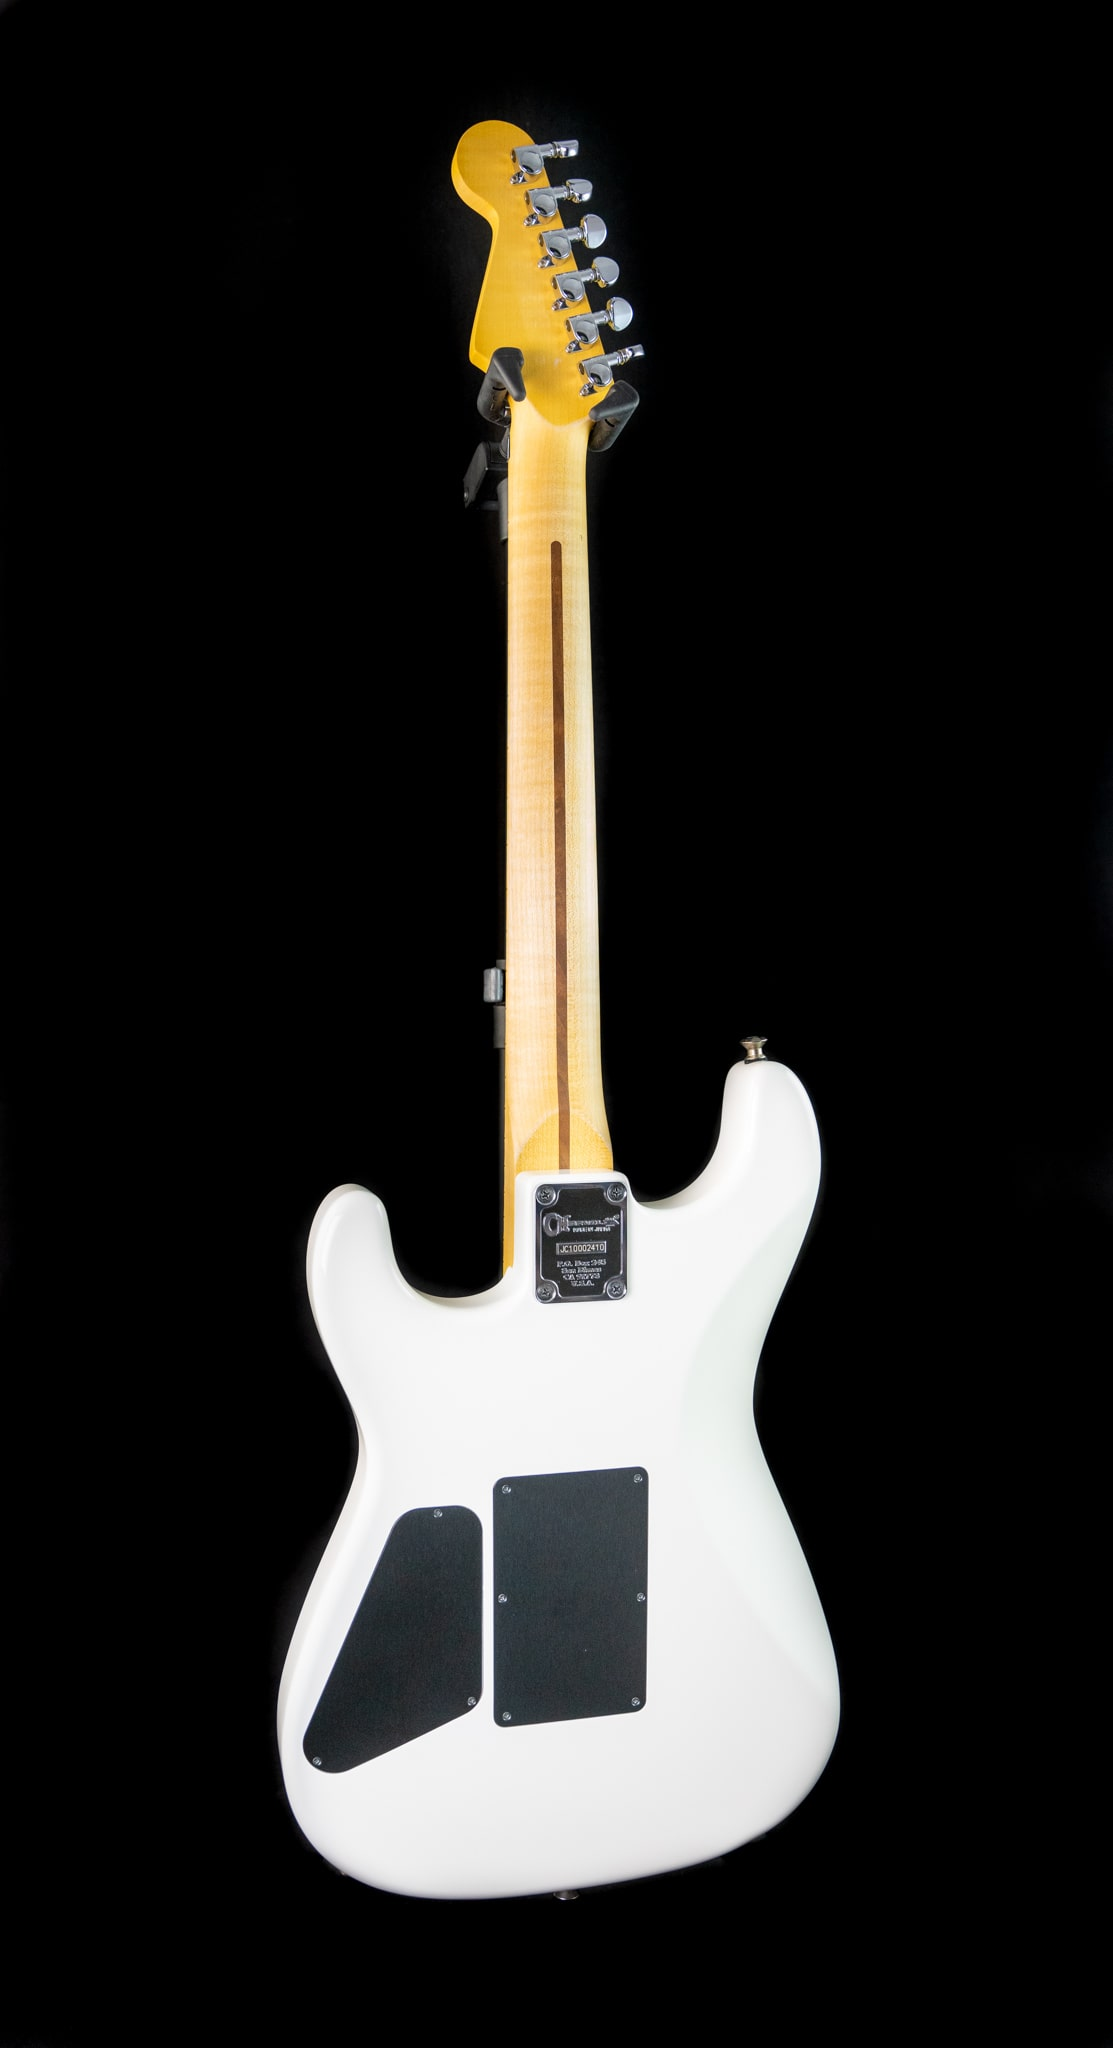 Charvel - Modded - San Dimas Style 1 in Snow White, Pre-Owned